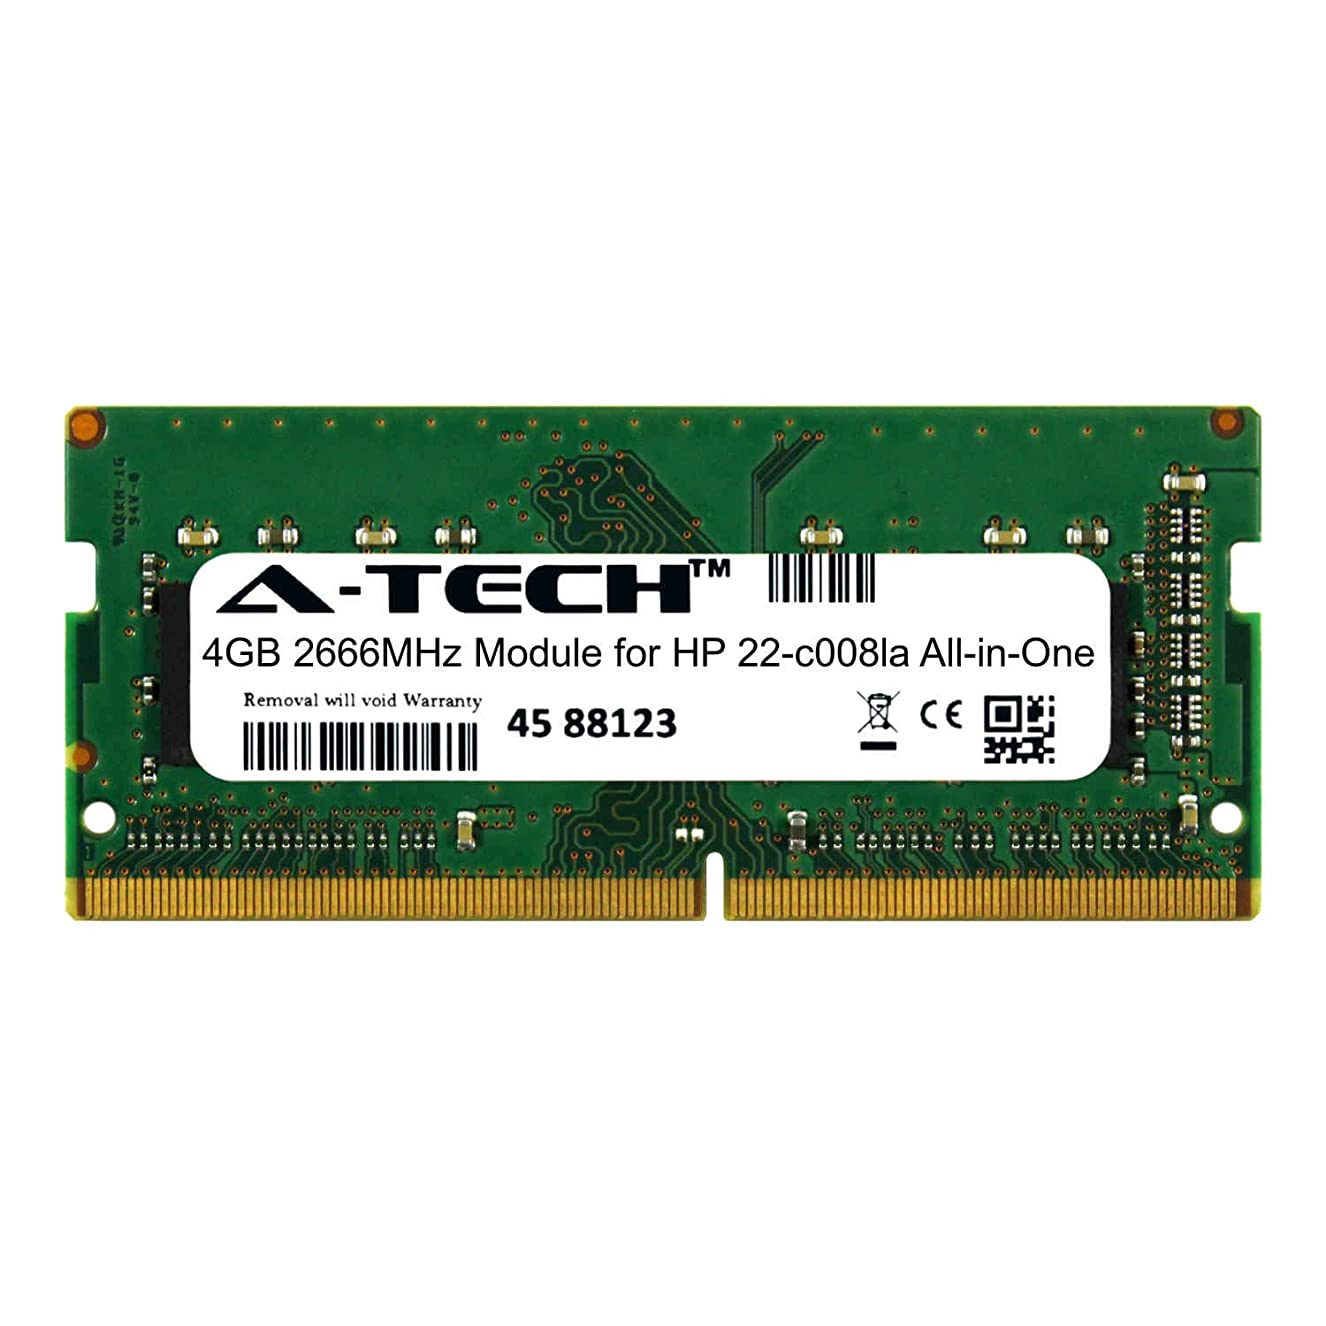 A-Tech 4GB Module for HP 22-c008la All-in-One (AIO) Compatible DDR4 2666Mhz Memory Ram (ATMS265248A25977X1) nbjardfatd6047